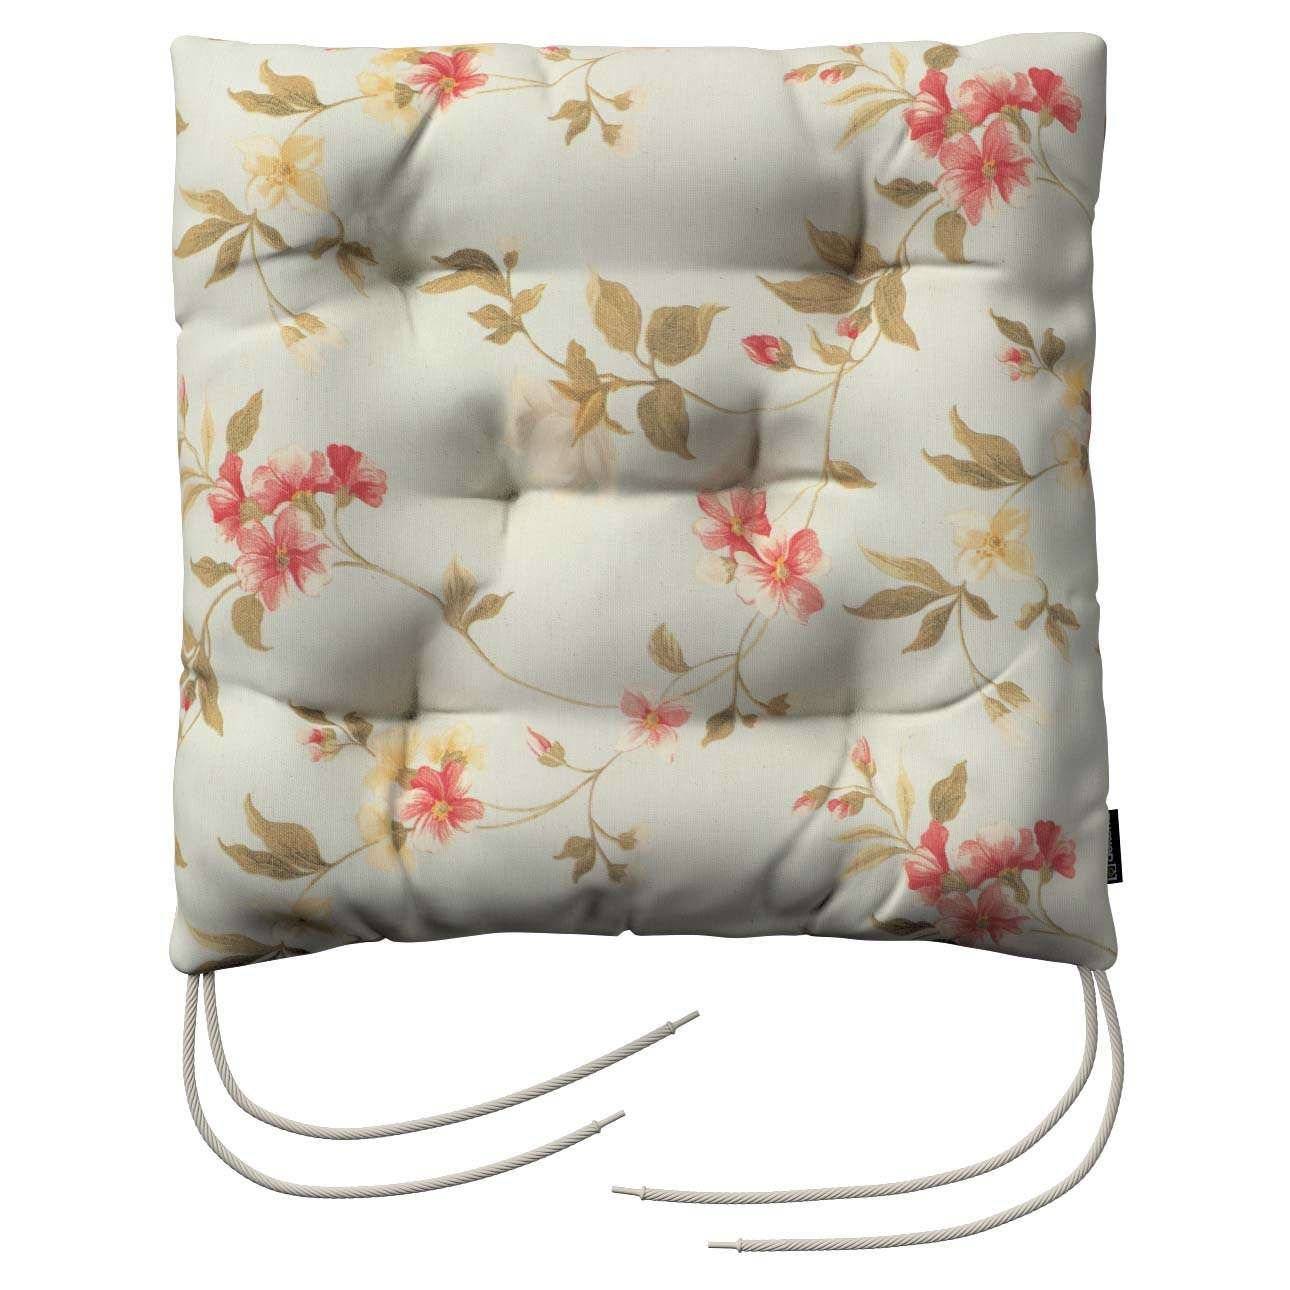 Jacek seat pad with ties 40 x 40 x 8 cm (16 x 16 x 3 inch) in collection Londres, fabric: 124-65